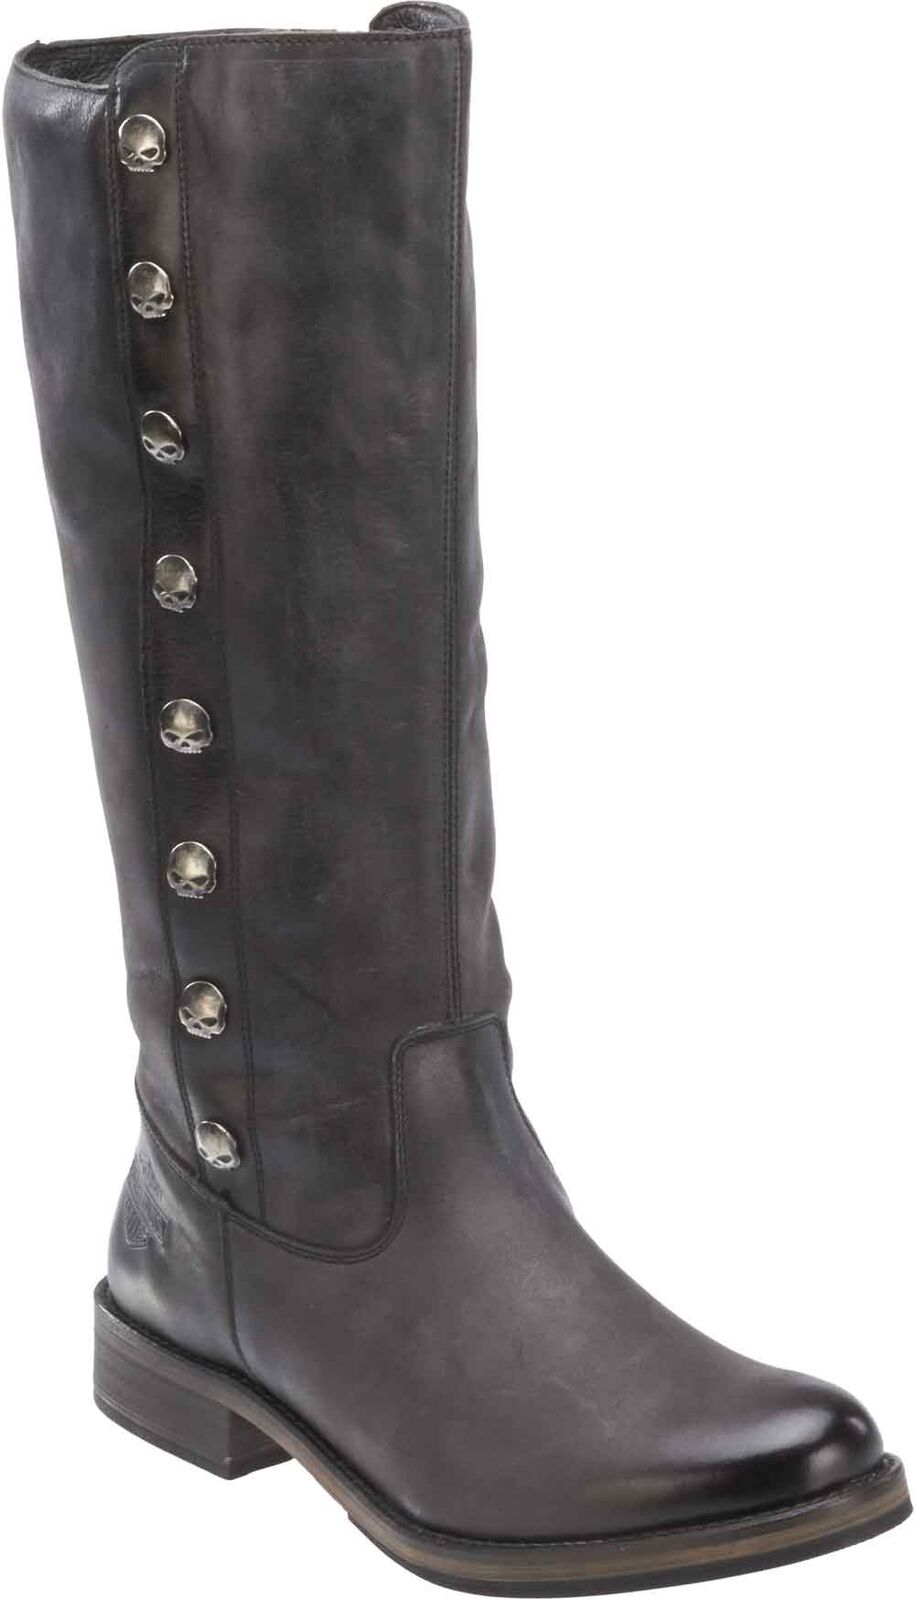 Harley-Davidson Women's Capstan Black Leather Motorcycle Boots. D83606